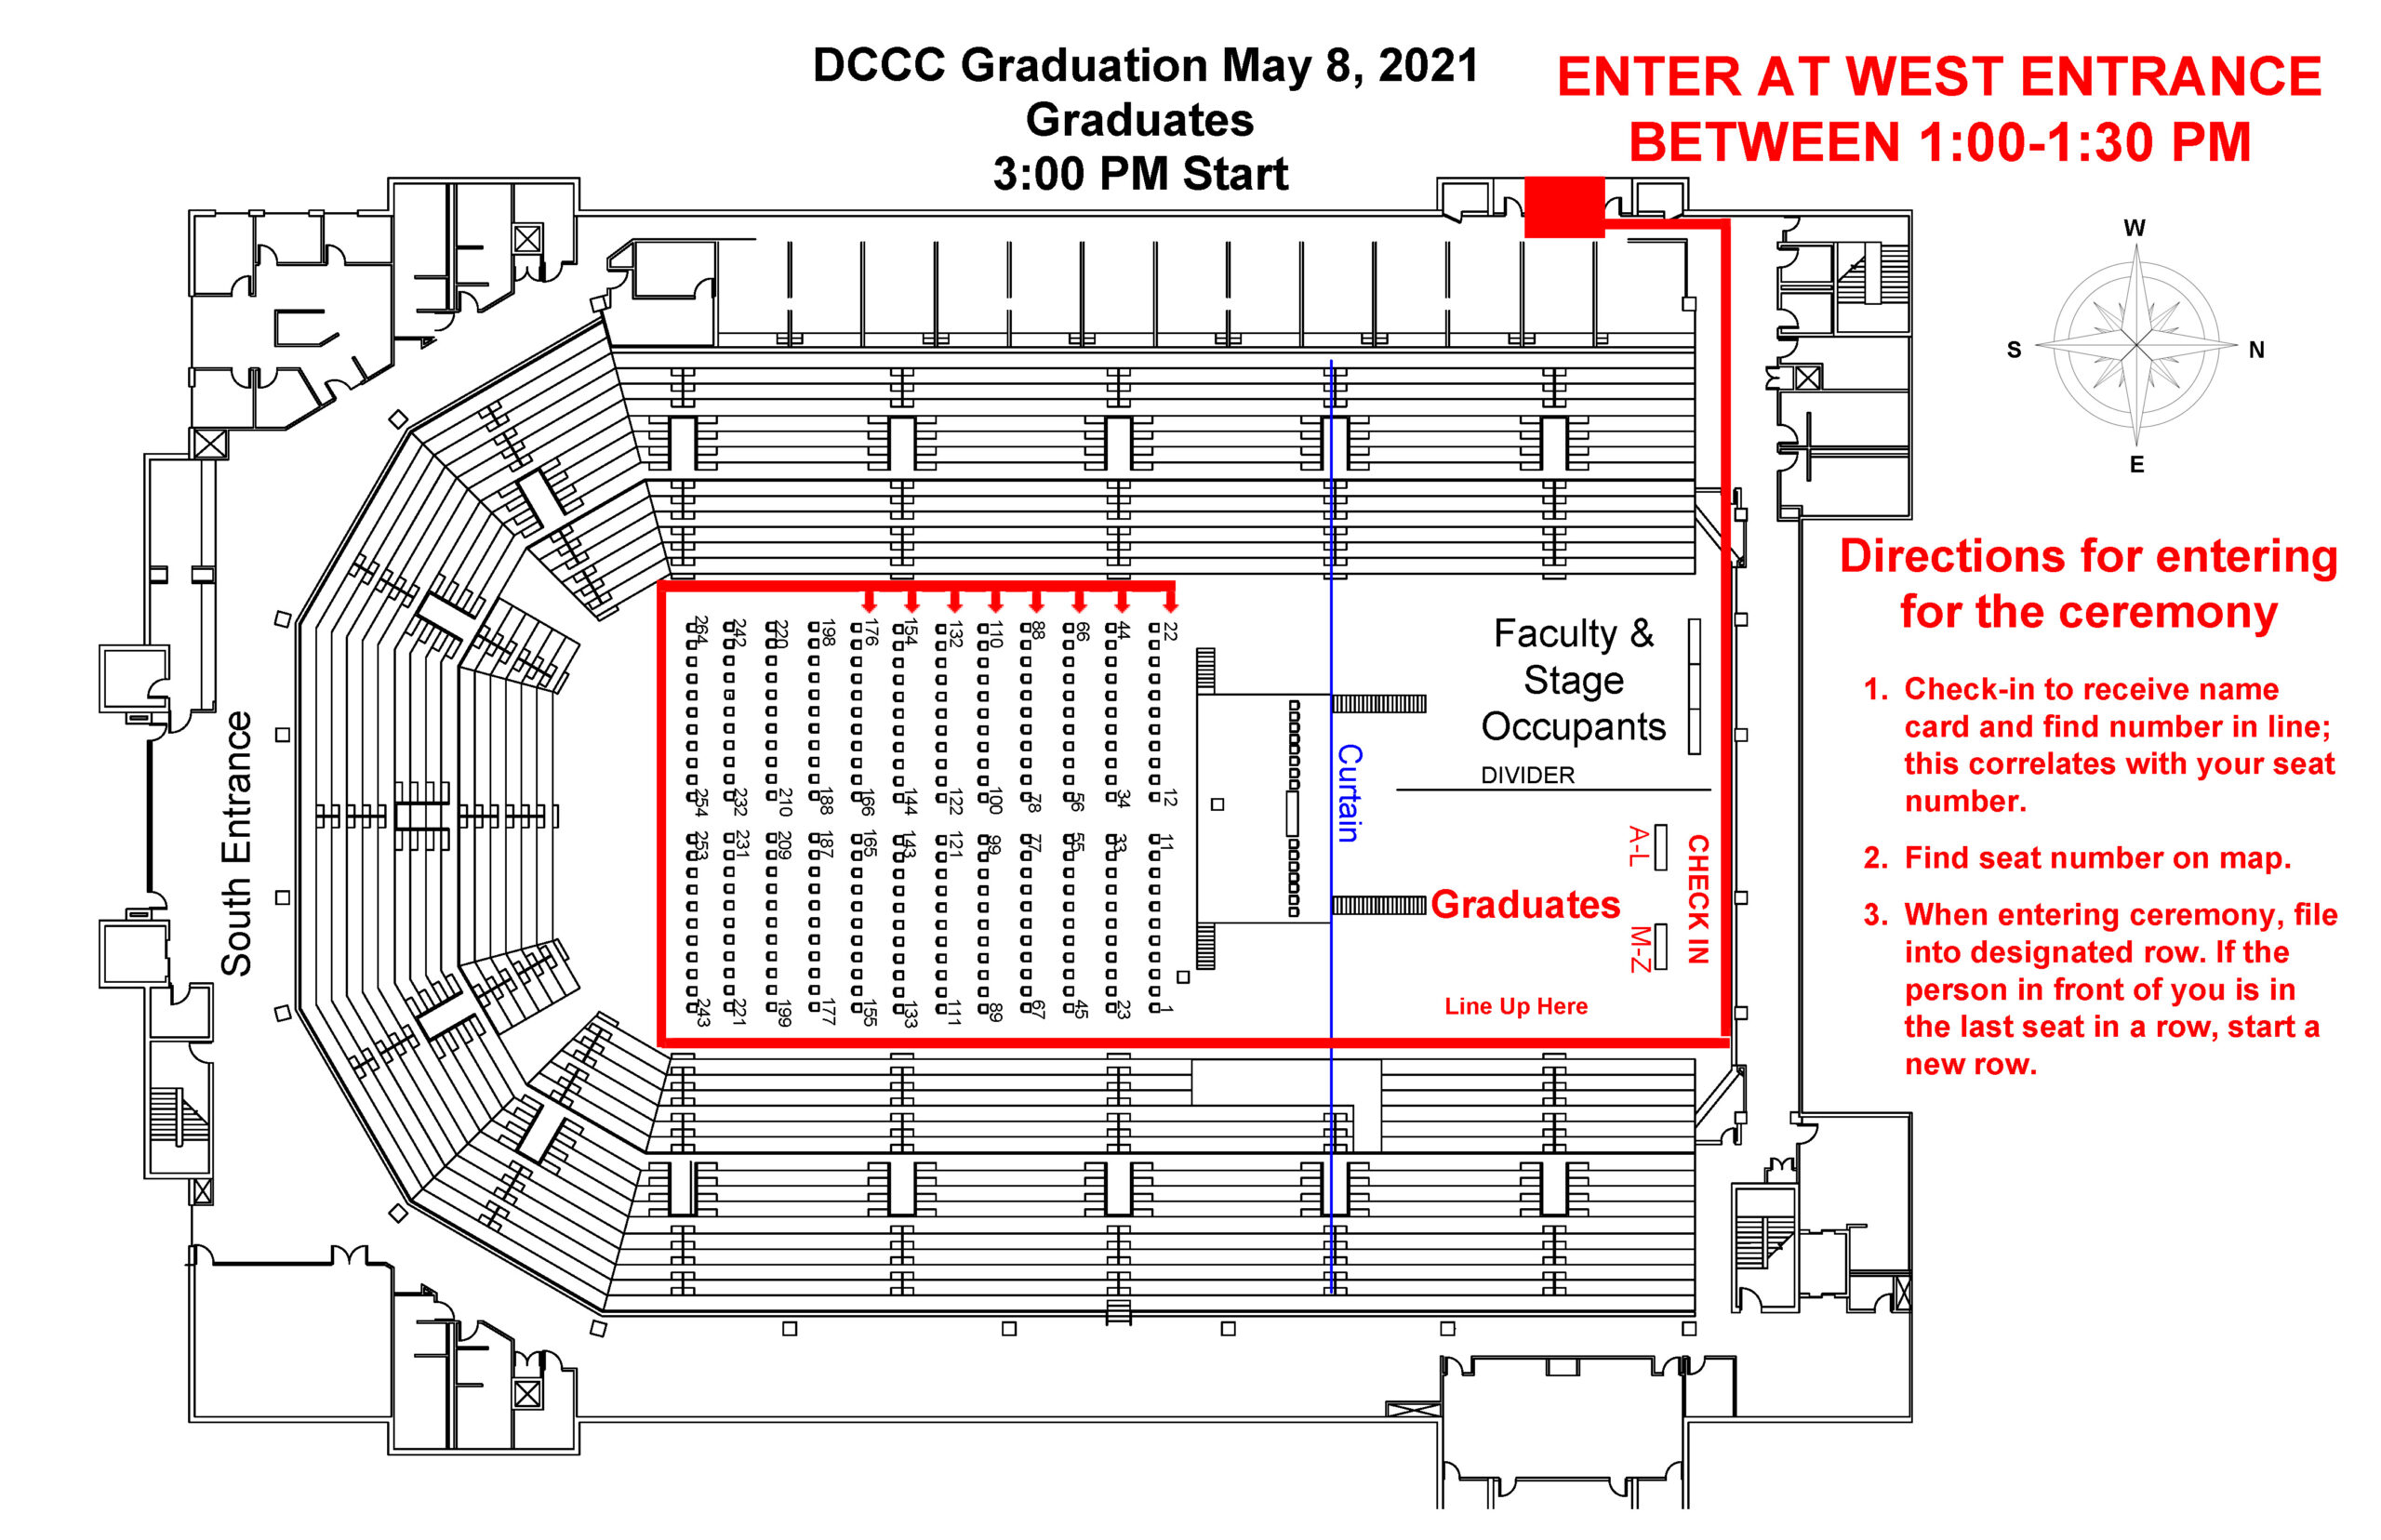 United Wireless Arena Entrance Instructions Map